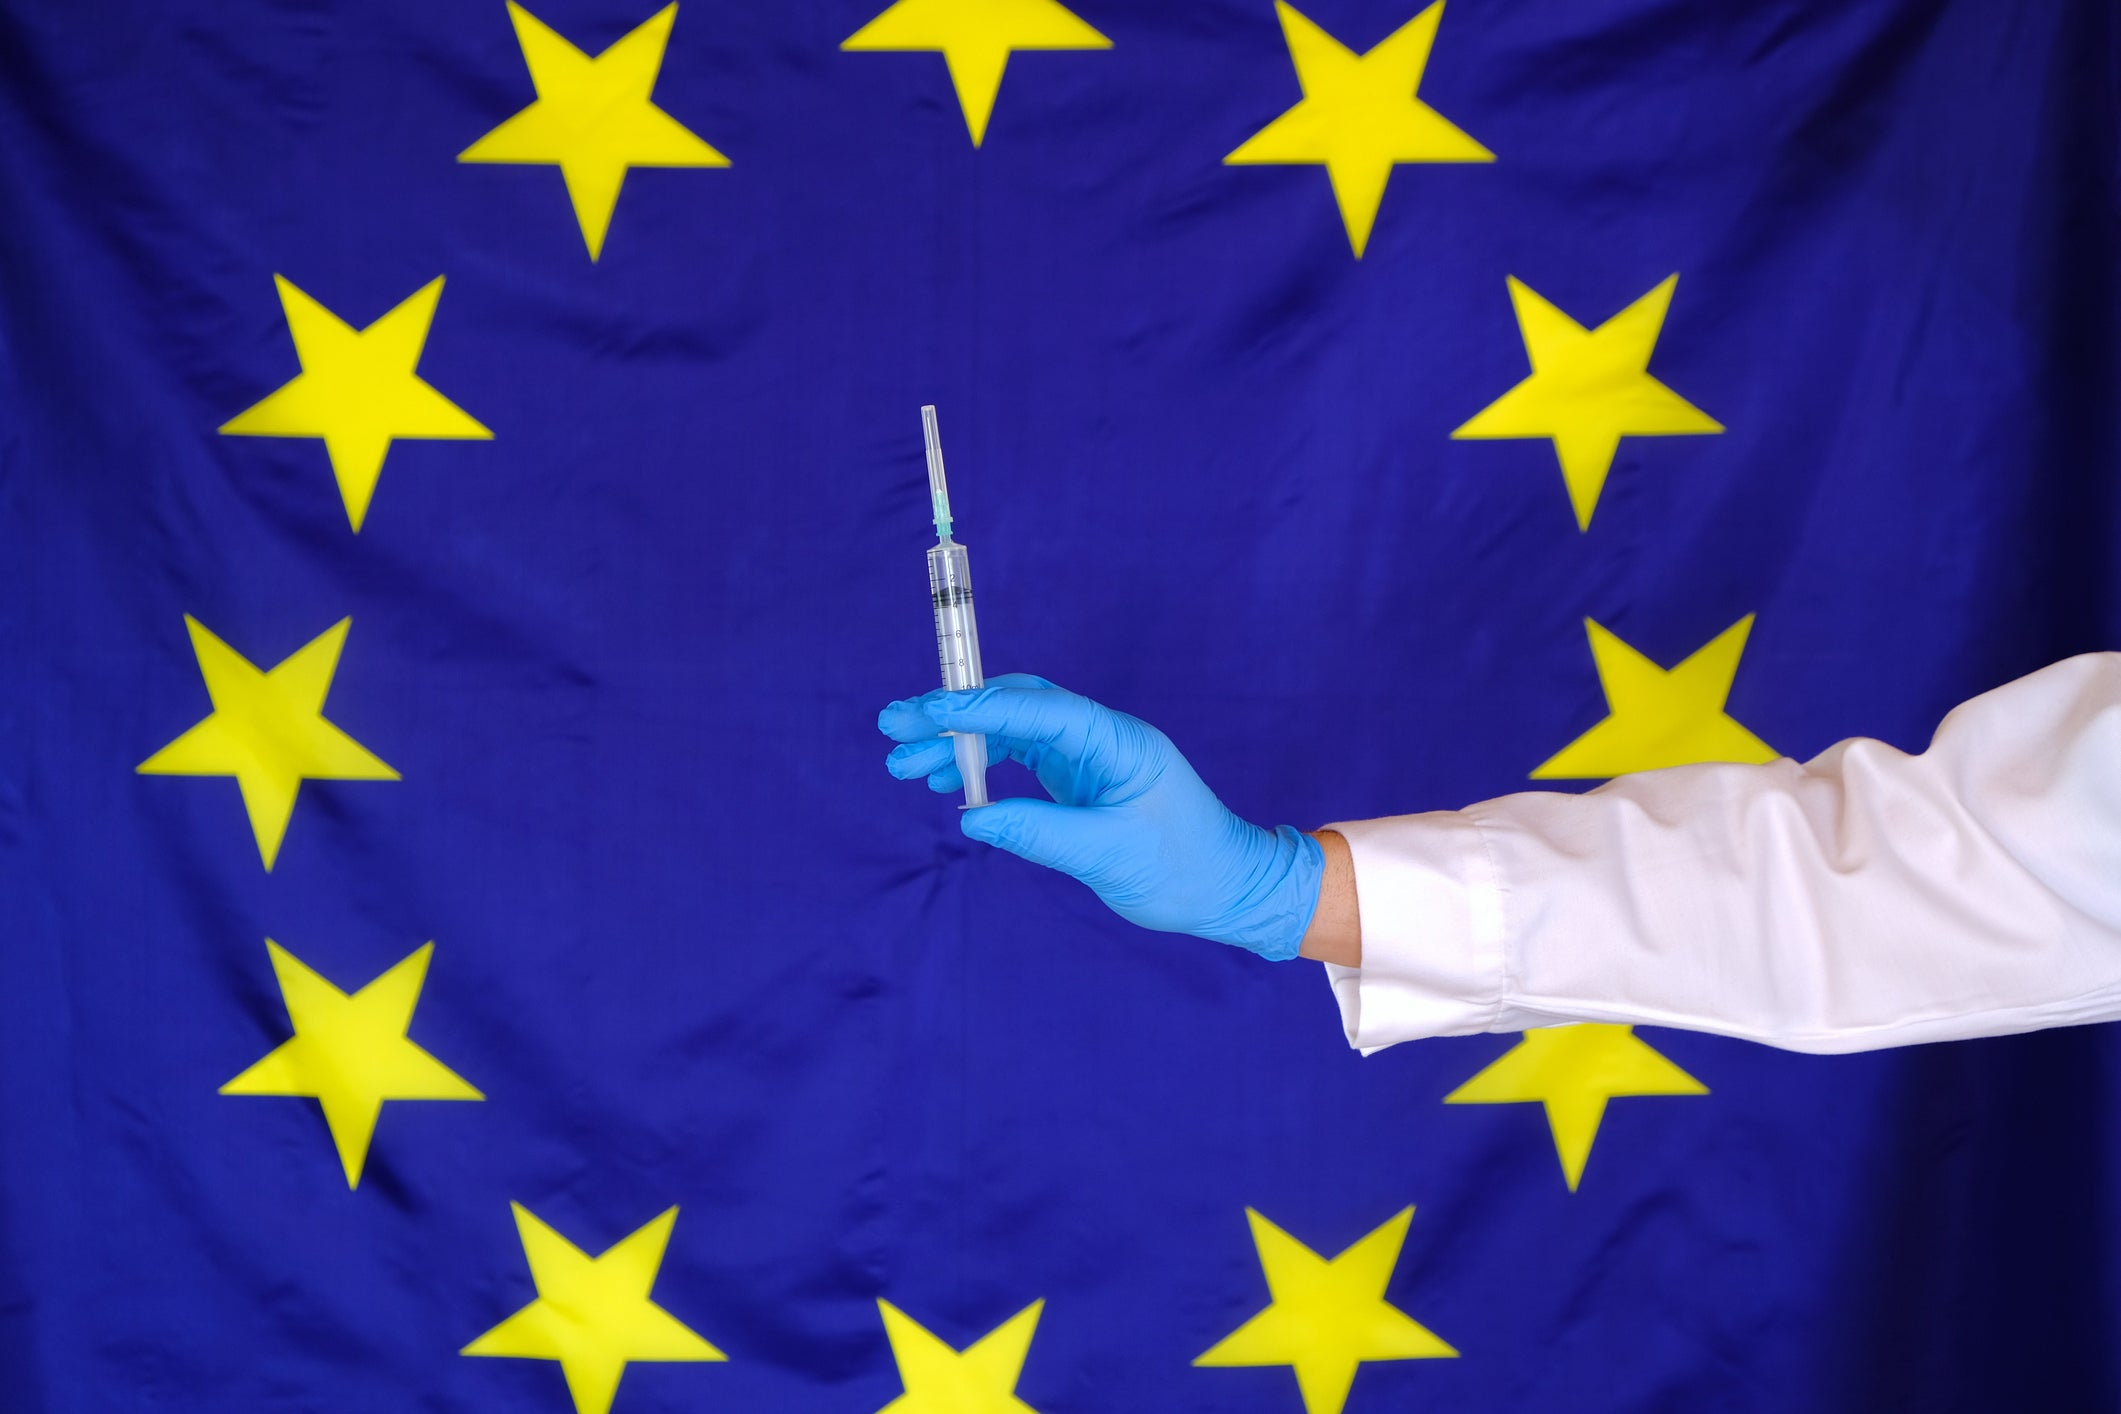 Why Novavax's Pending COVID Vaccine Deal With the EU Raised Concerns